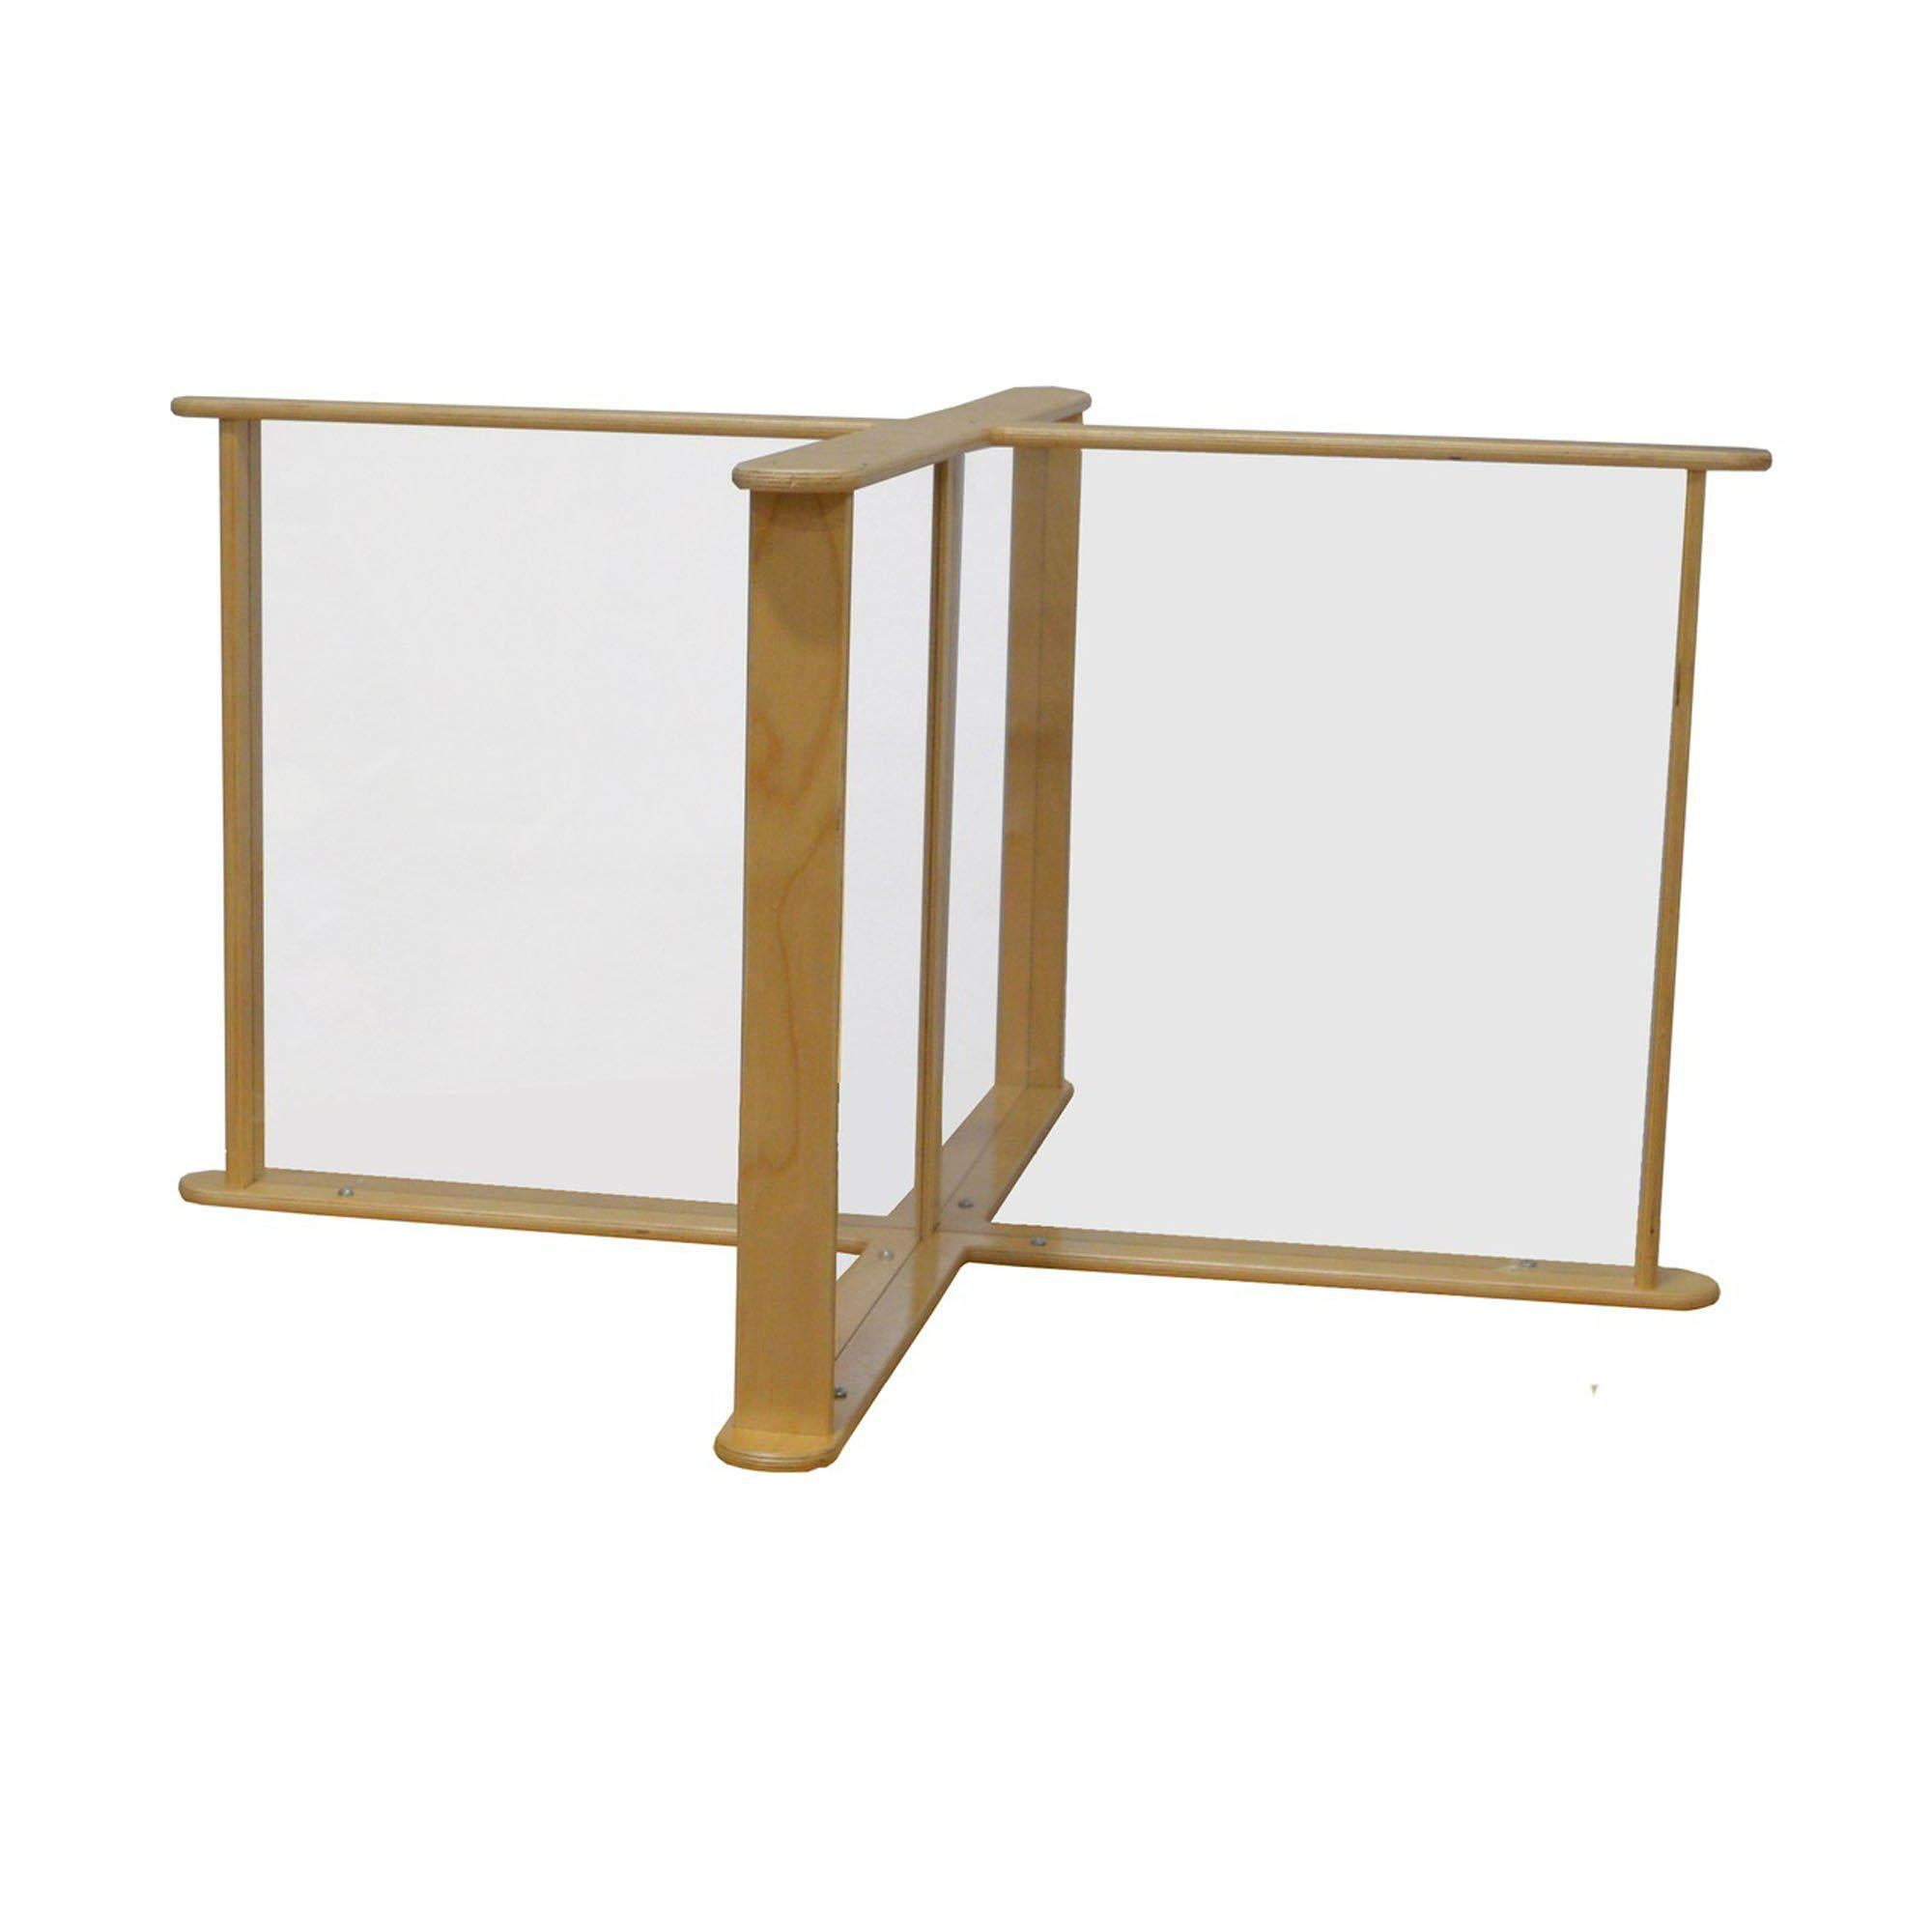 "Sneeze Guard Table Partition, 45.75"" x 45.75"""